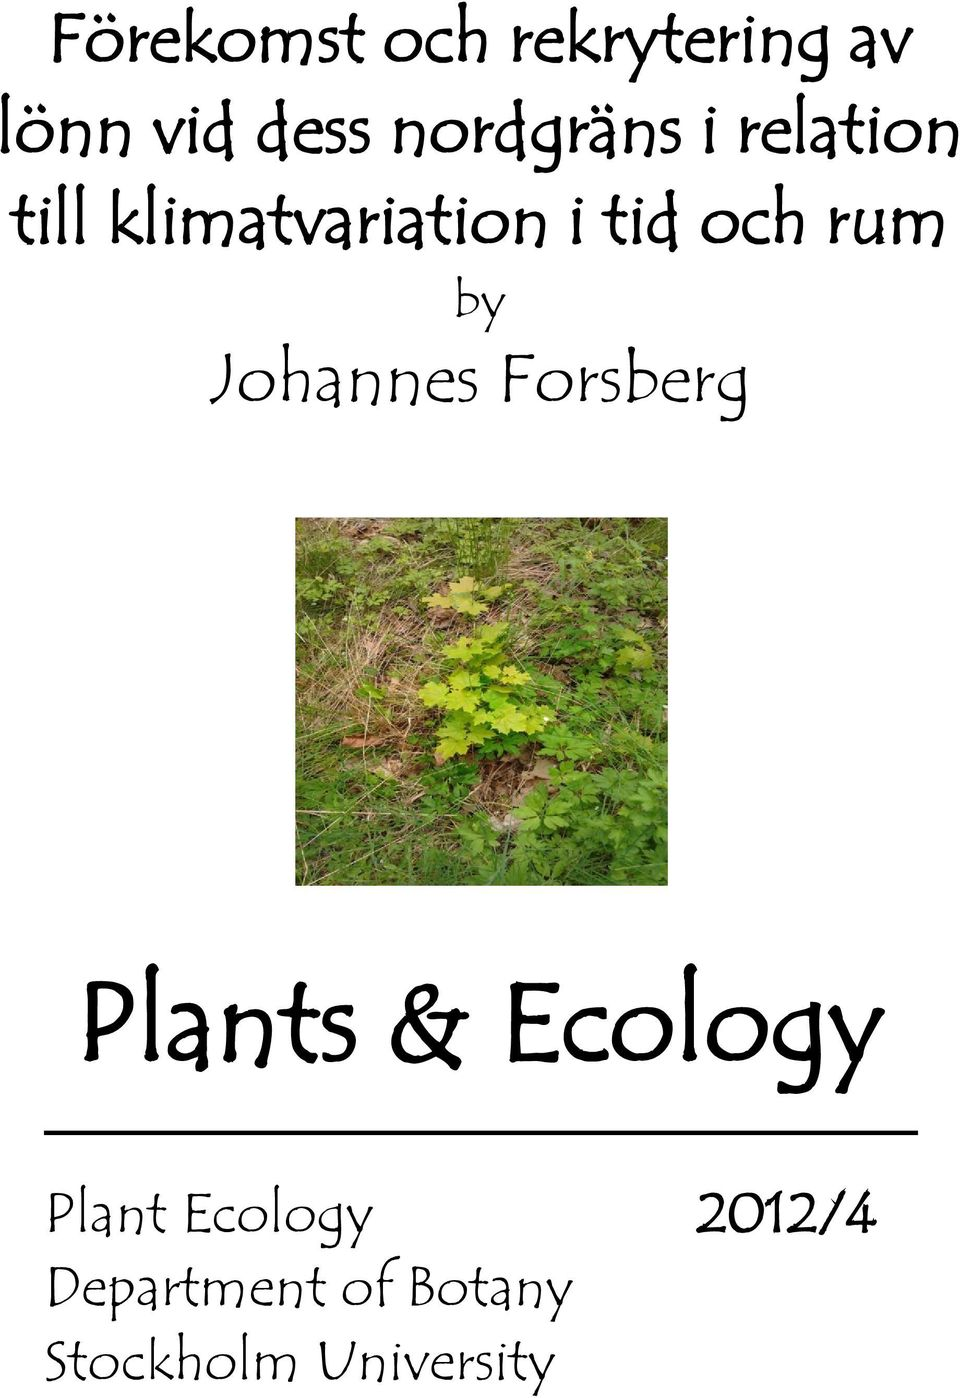 och rum by Johannes Forsberg Plants & Ecology